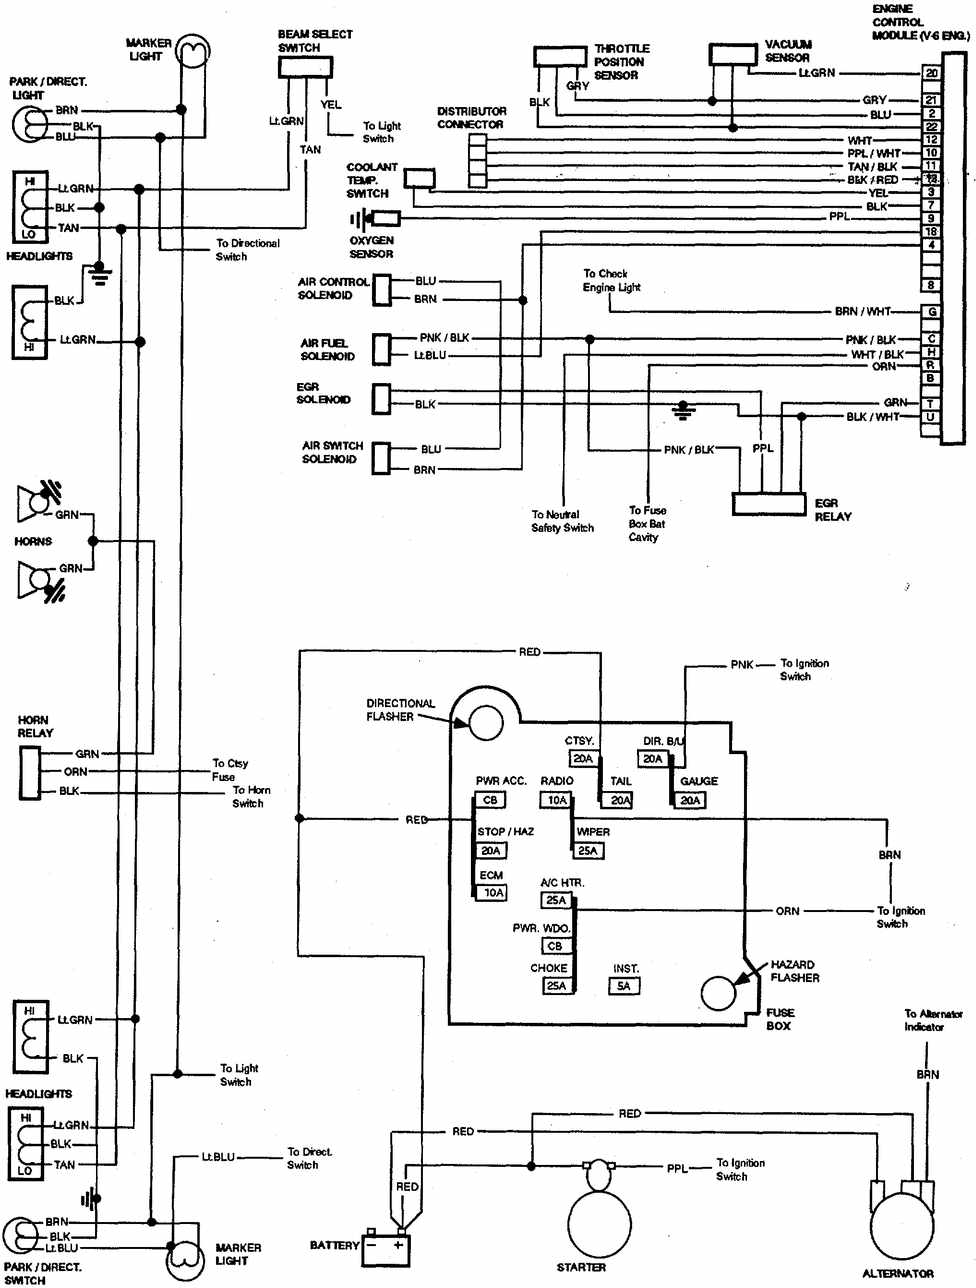 1985 chevy truck tail light wiring diagram